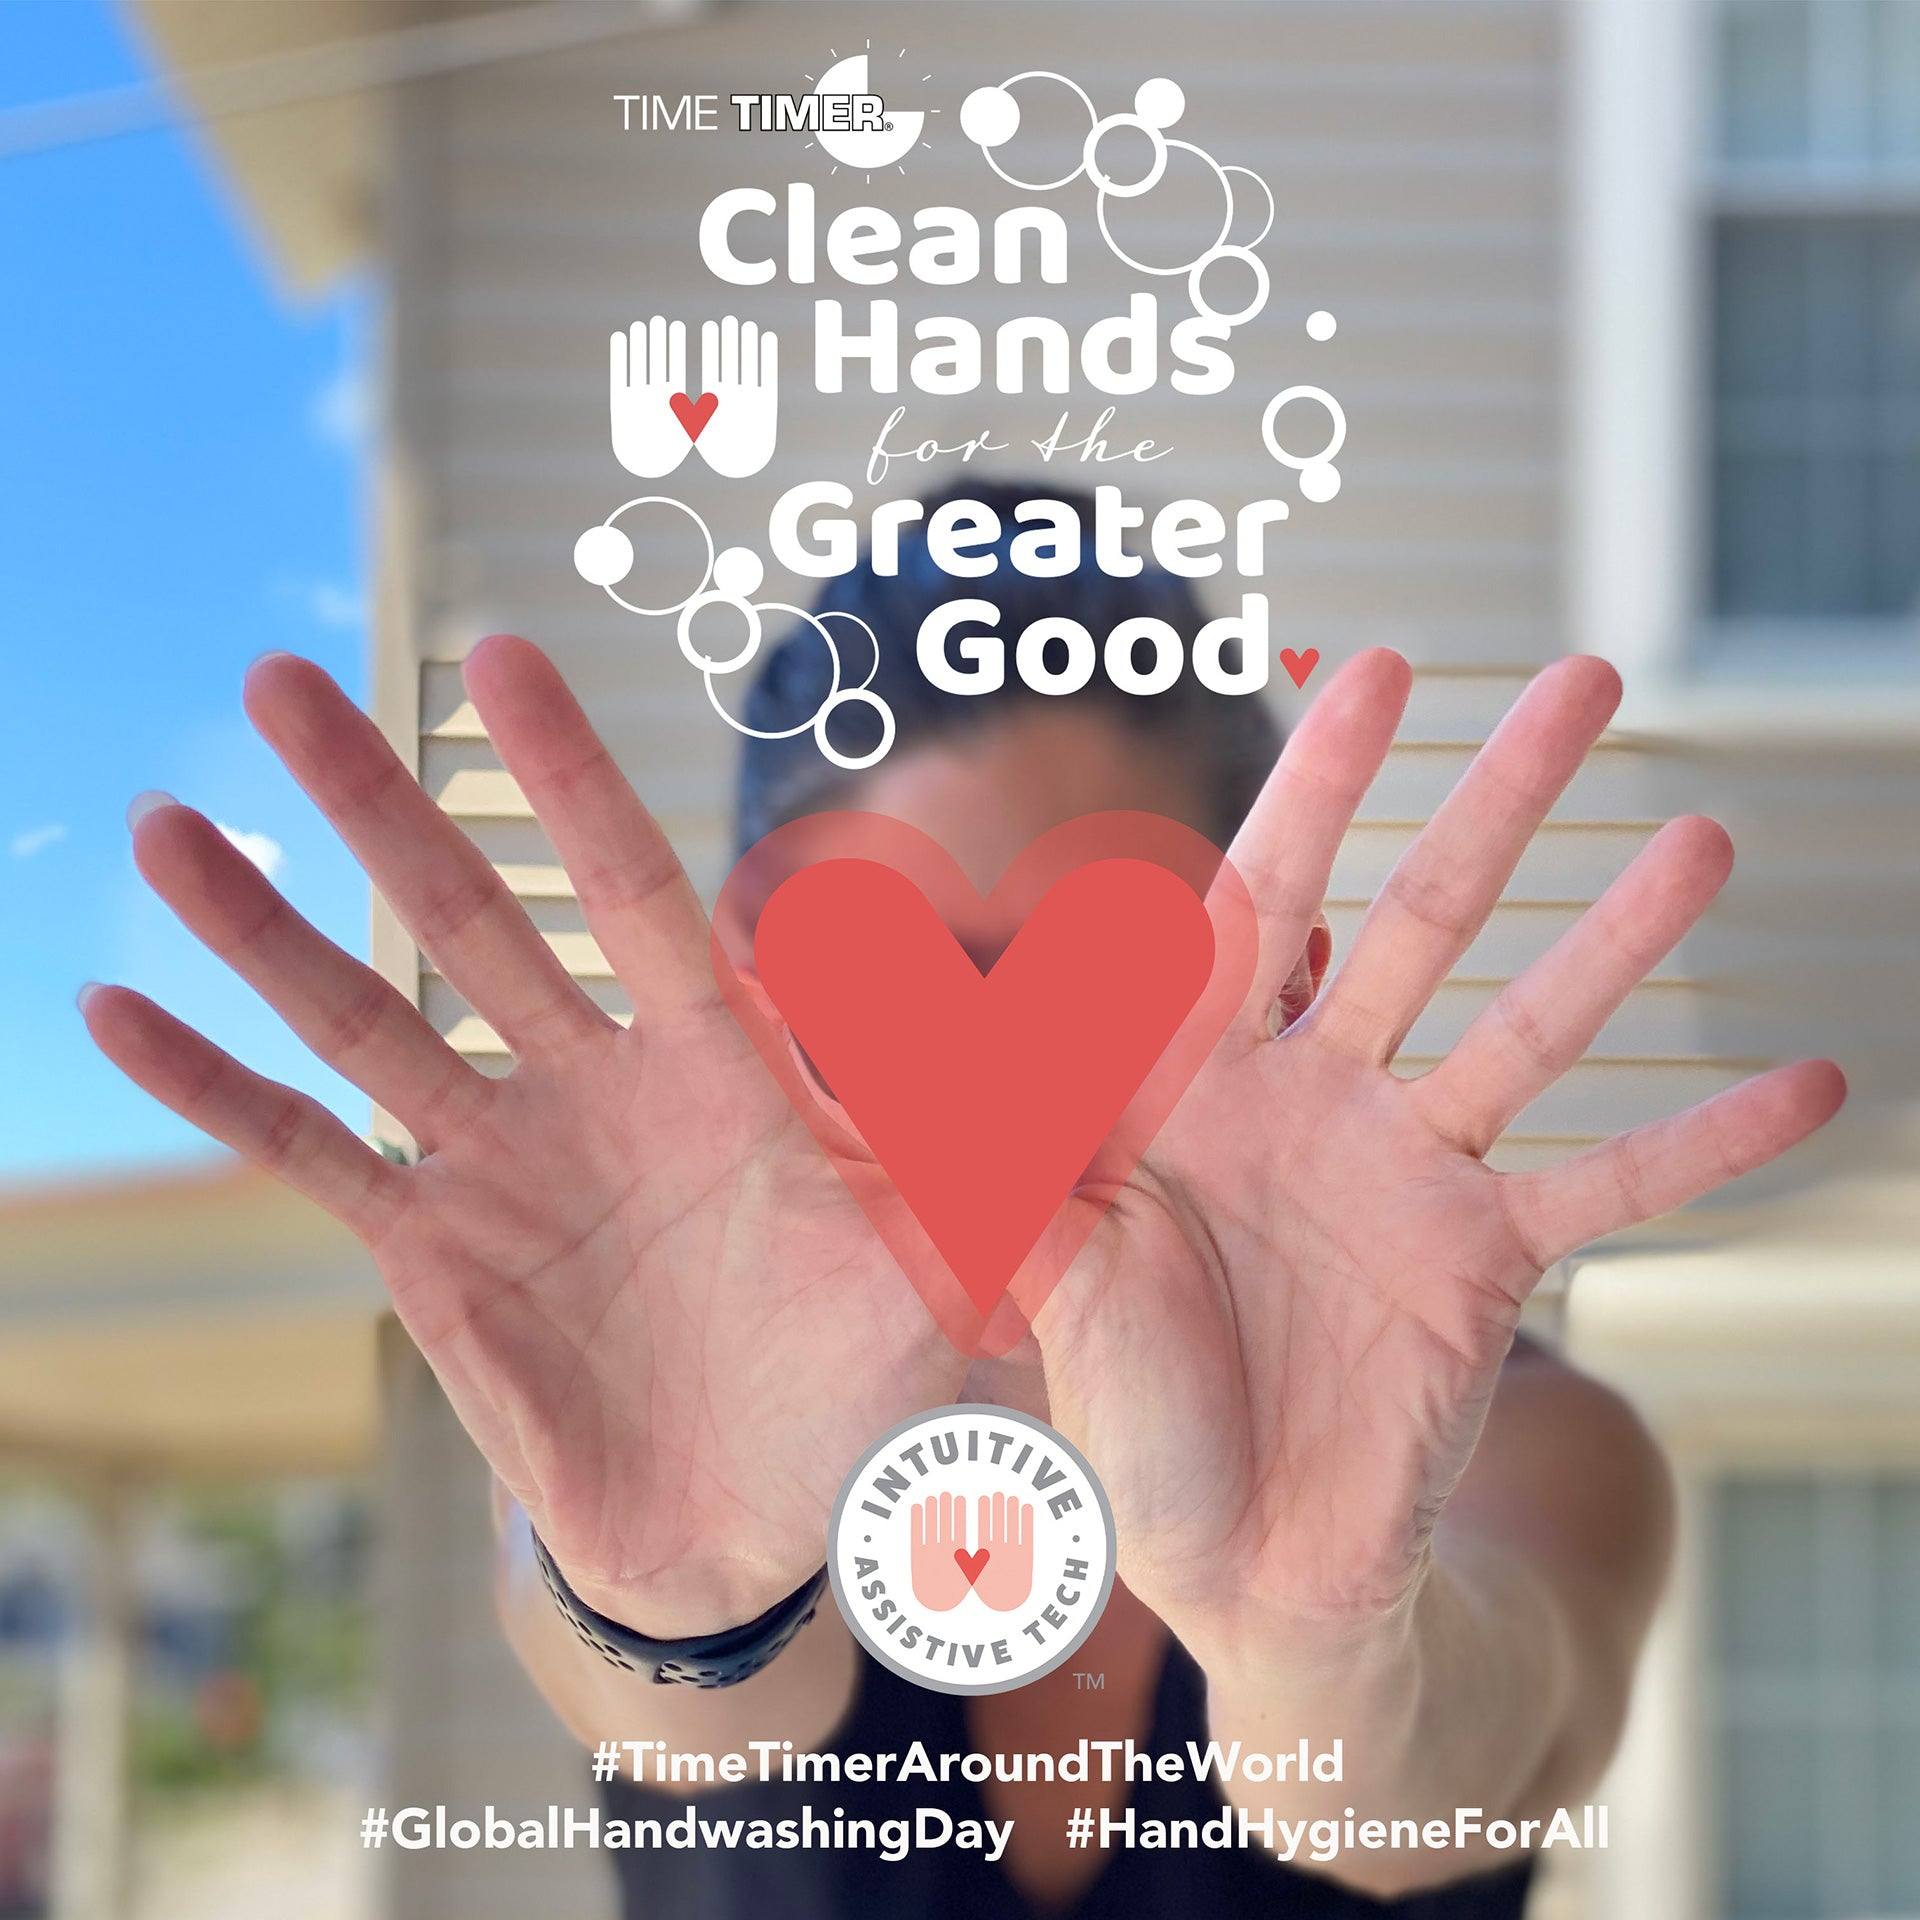 Clean Hands Greater Good